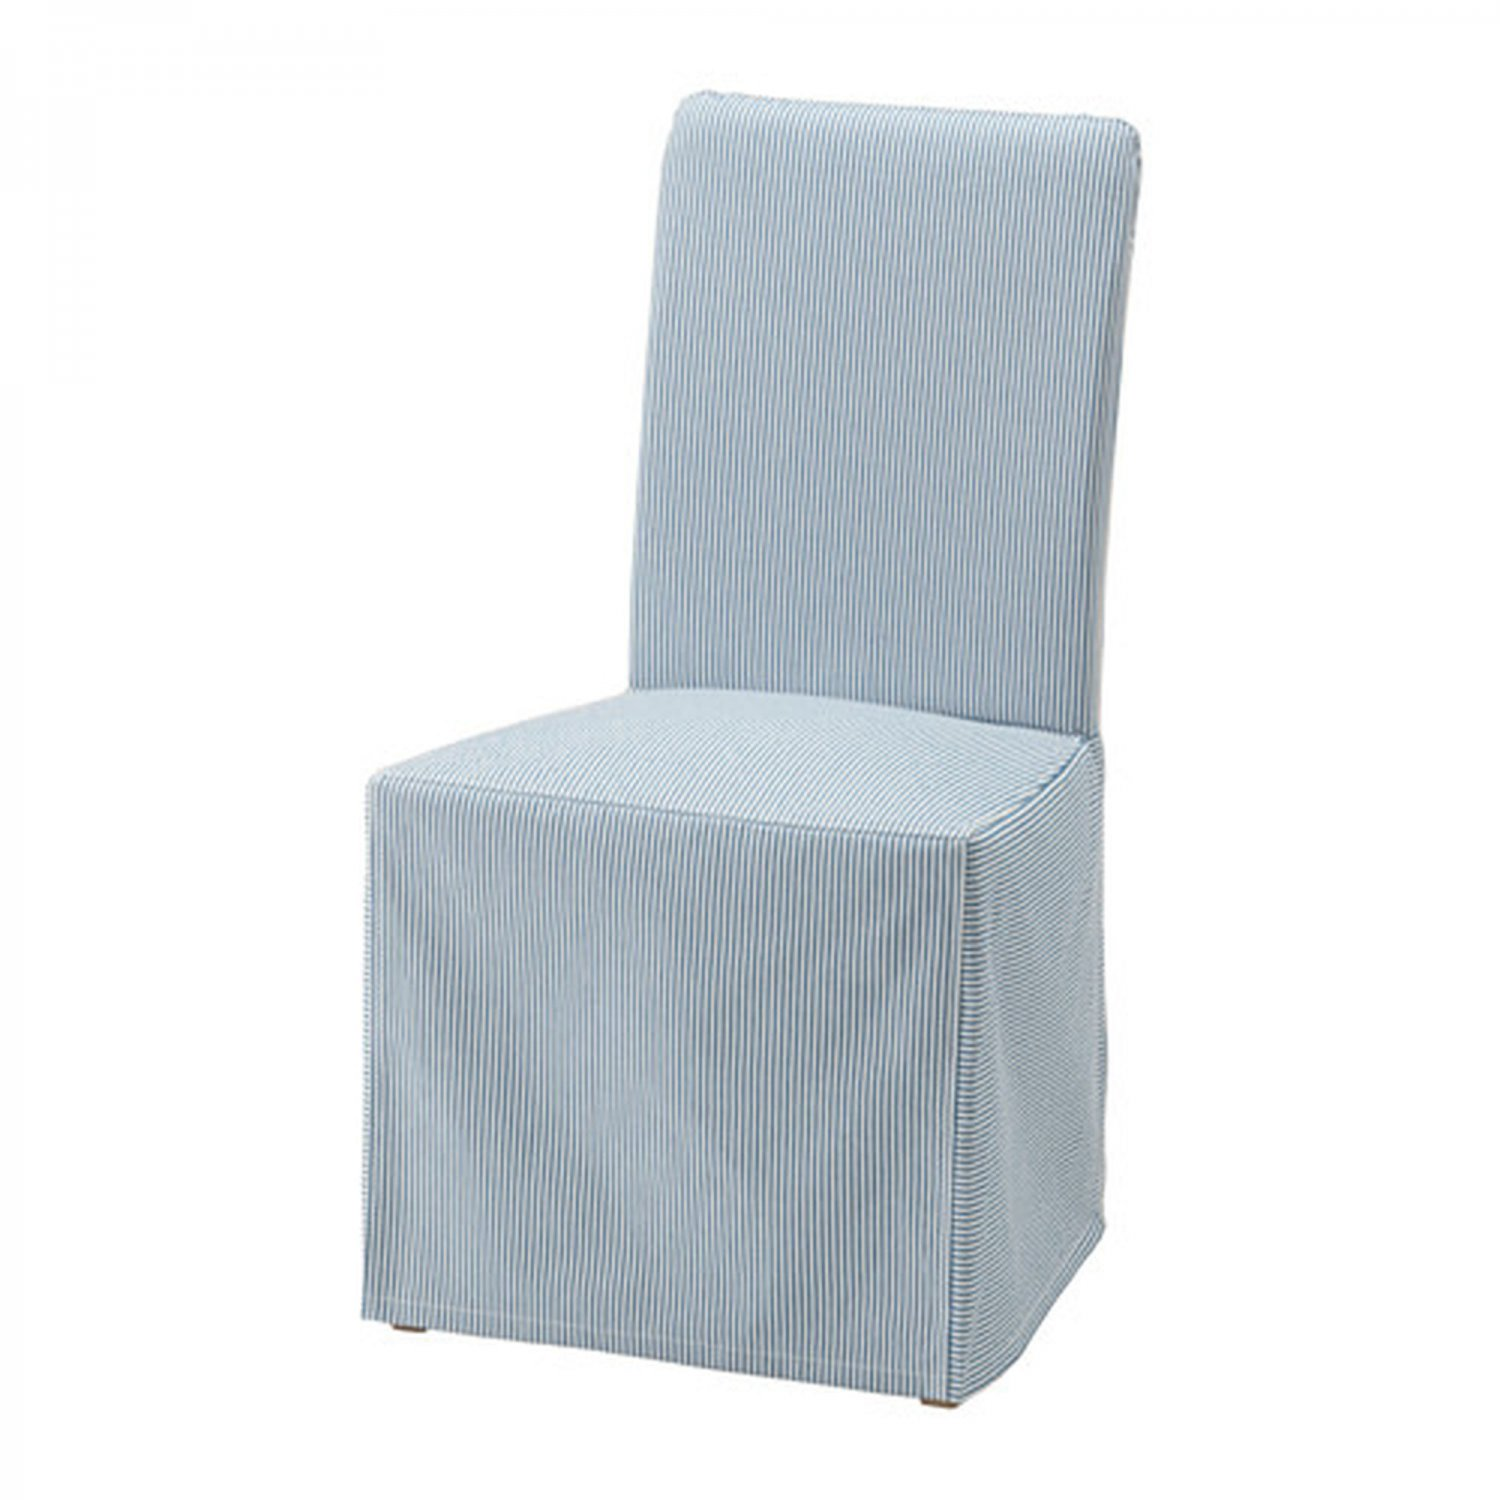 pale blue chair covers massage bed ikea henriksdal slipcover cover skirted remvallen